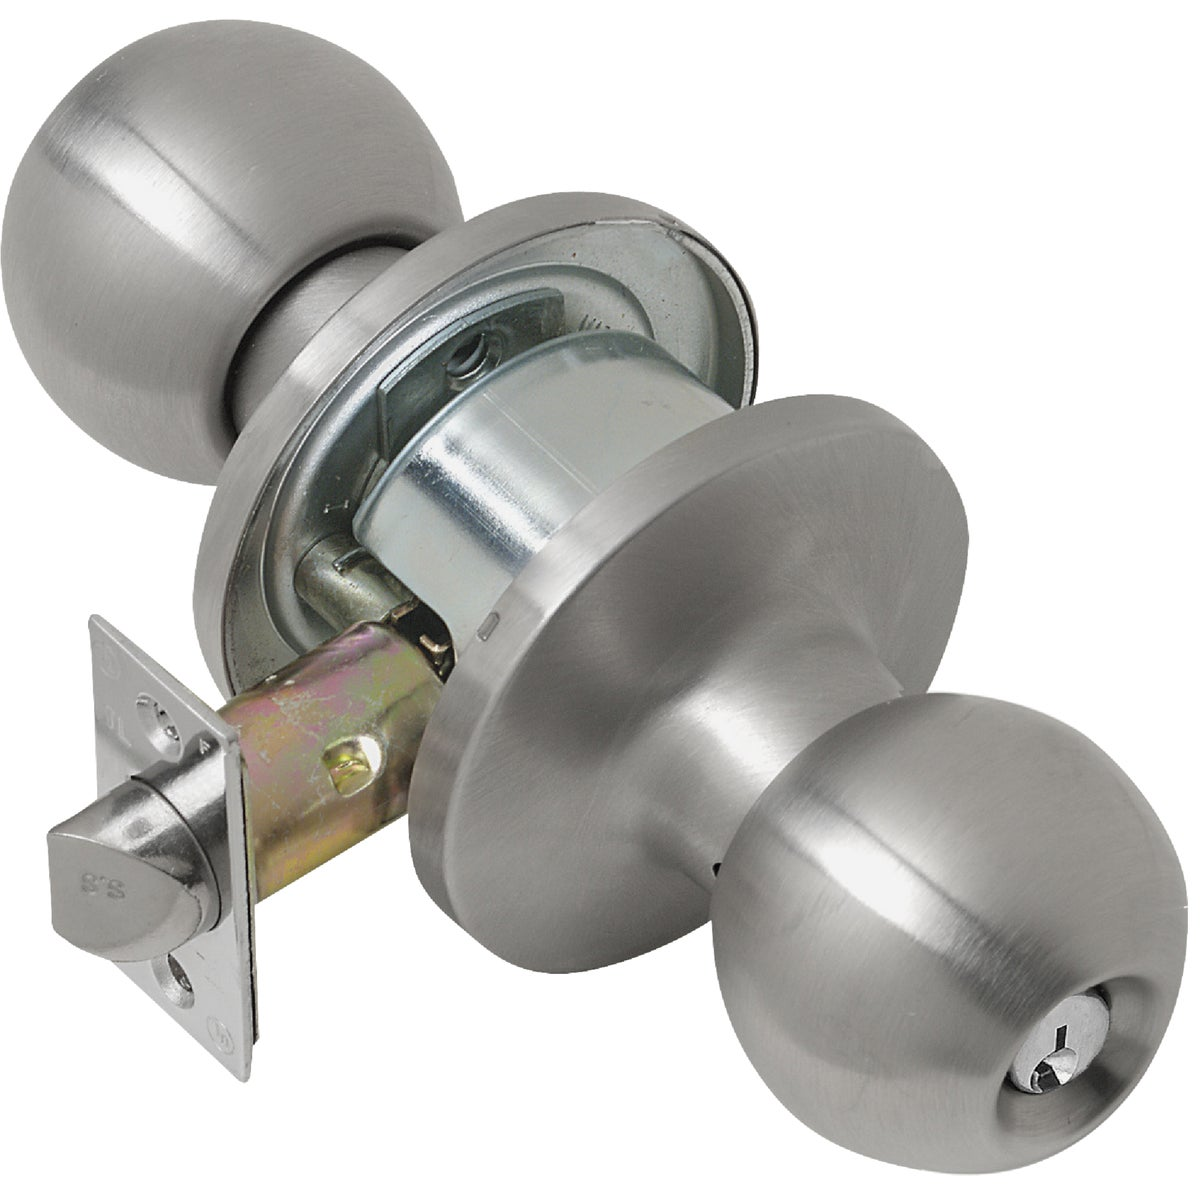 32D LD COMM ENTRY KNOB - CL100053 by Tell Mfg Inc